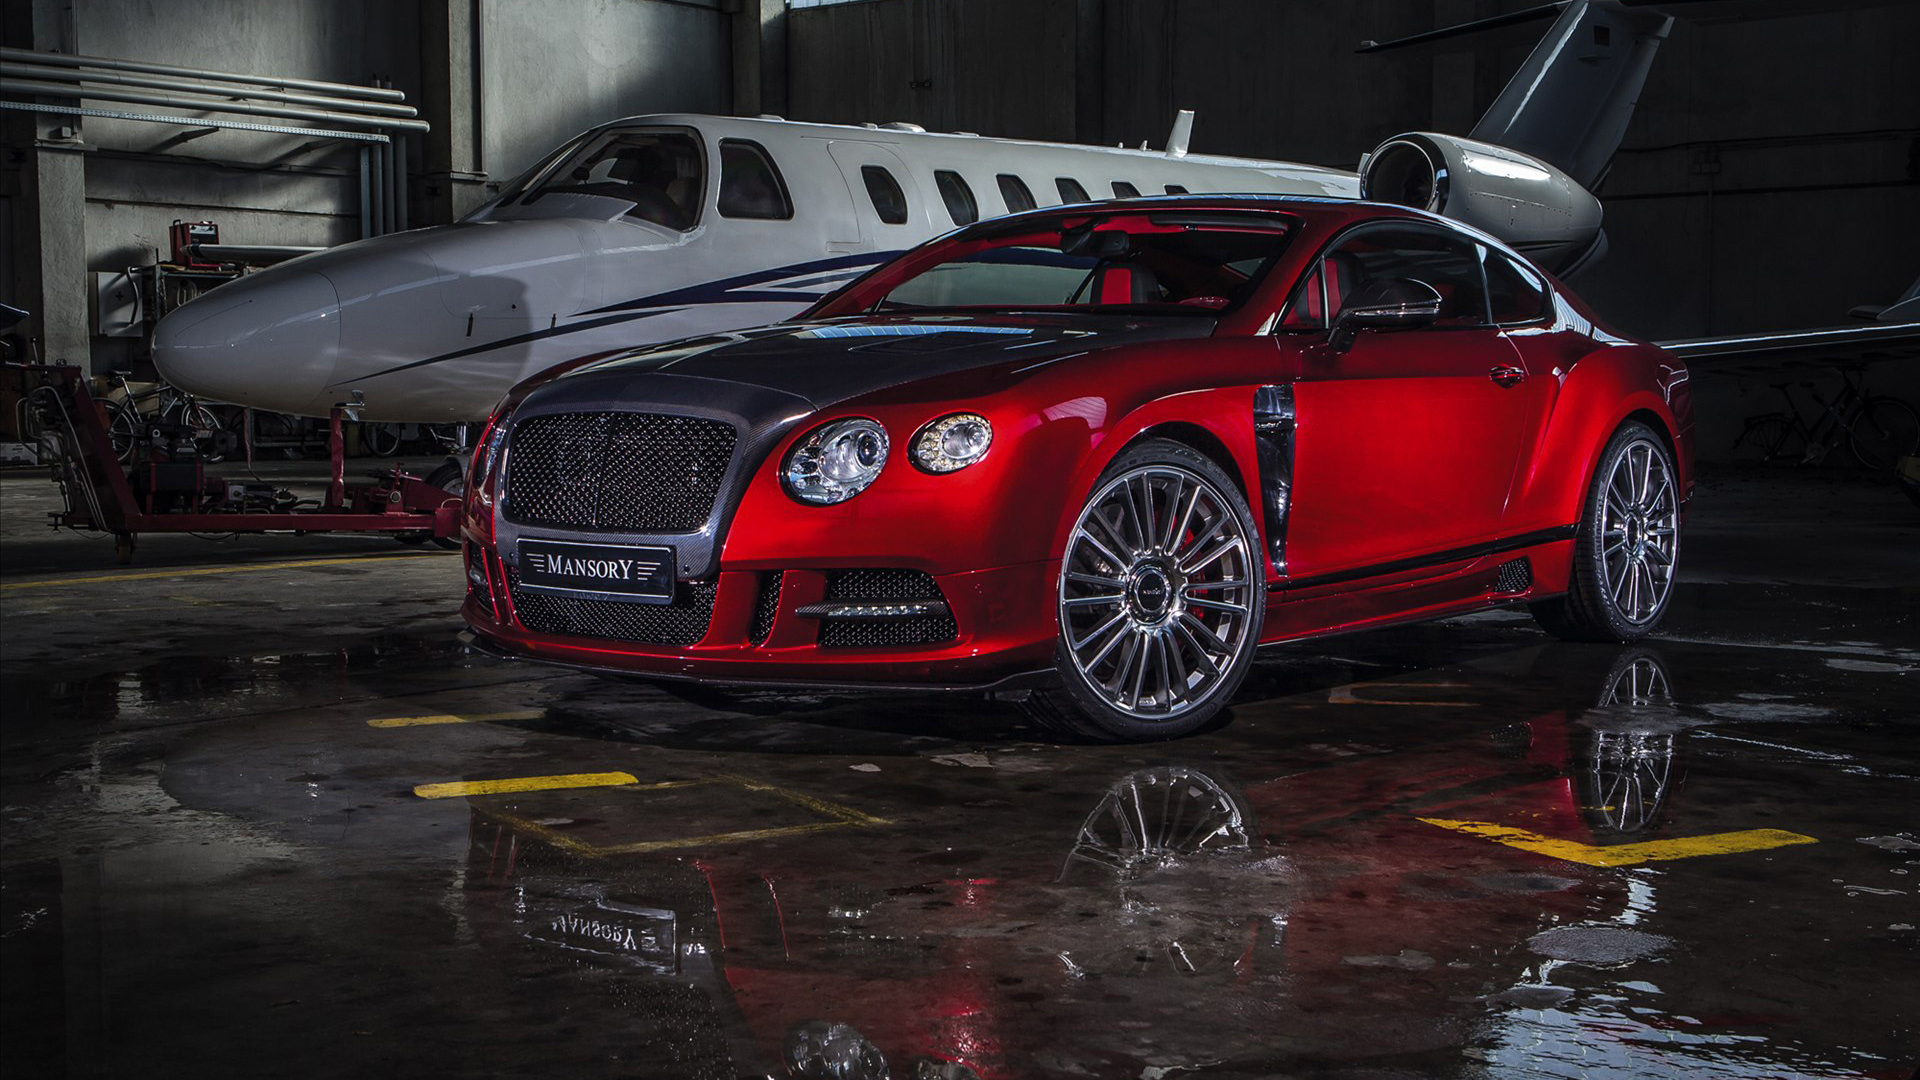 2013 Mansory Sanguis Bentley Continental Gt Wallpaper Hd